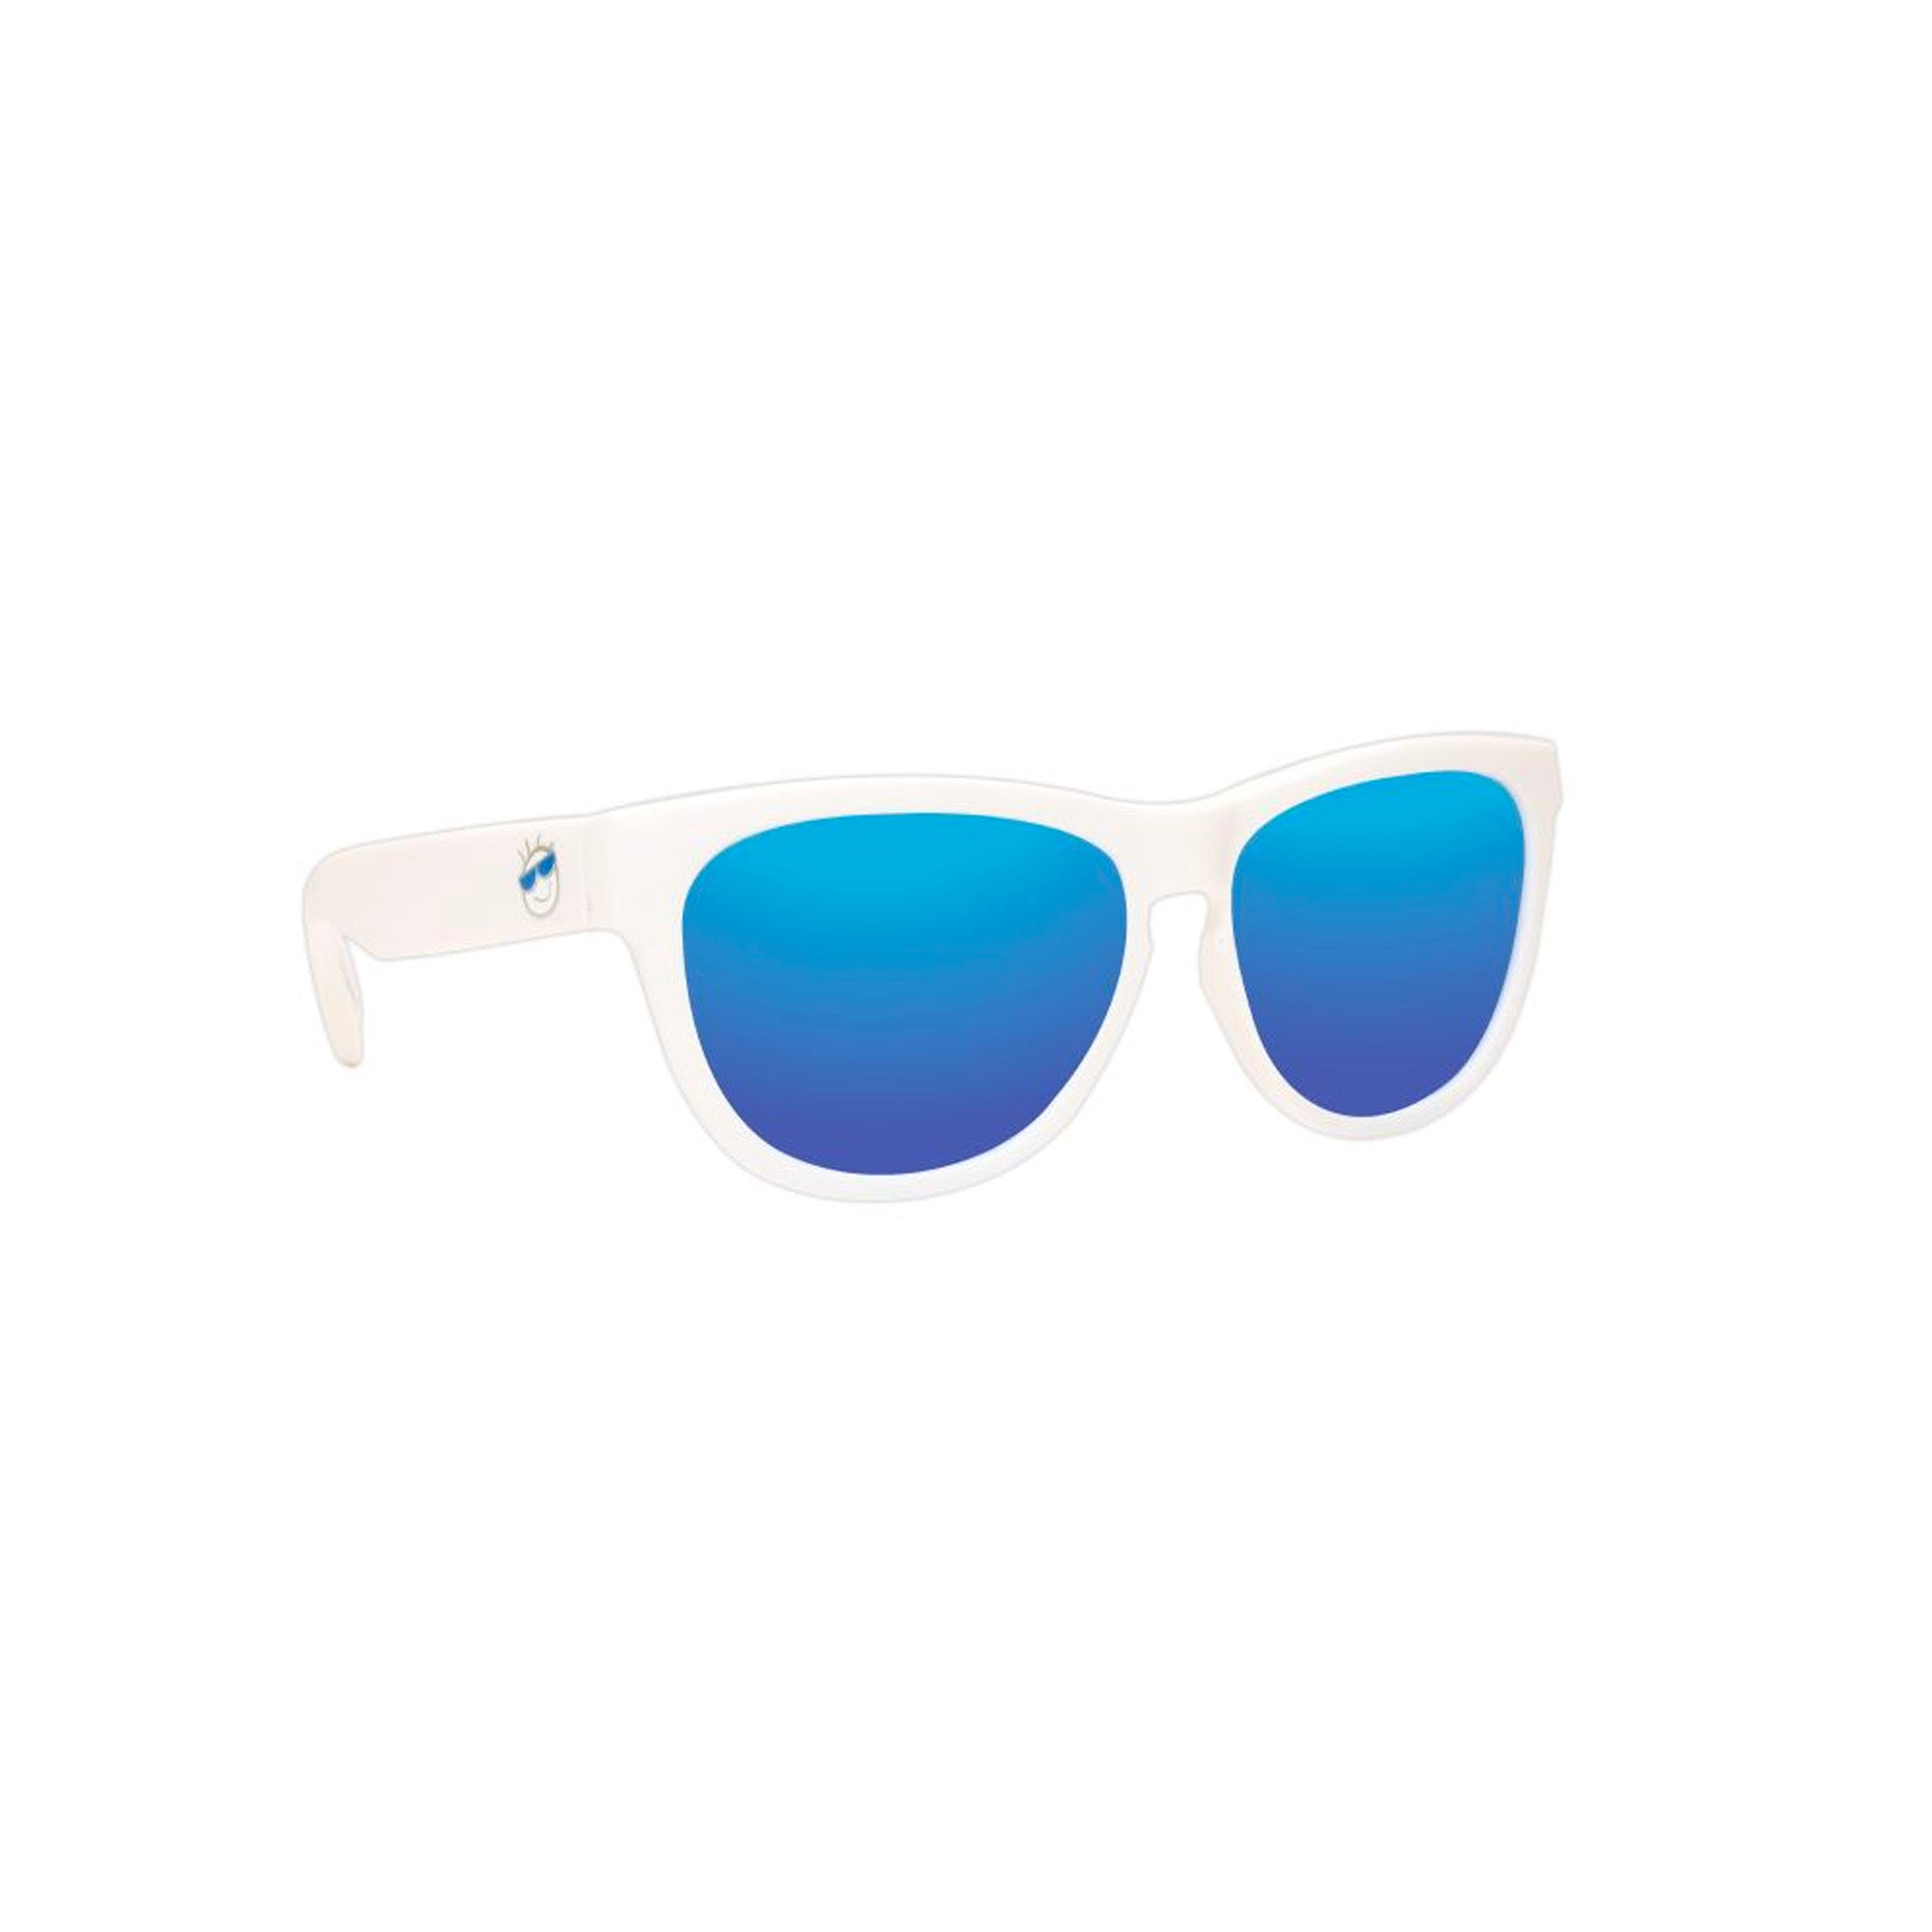 Mini Shades Classic Kid's Polarized Sunglasses (Ages 8-12+) - White Cloud